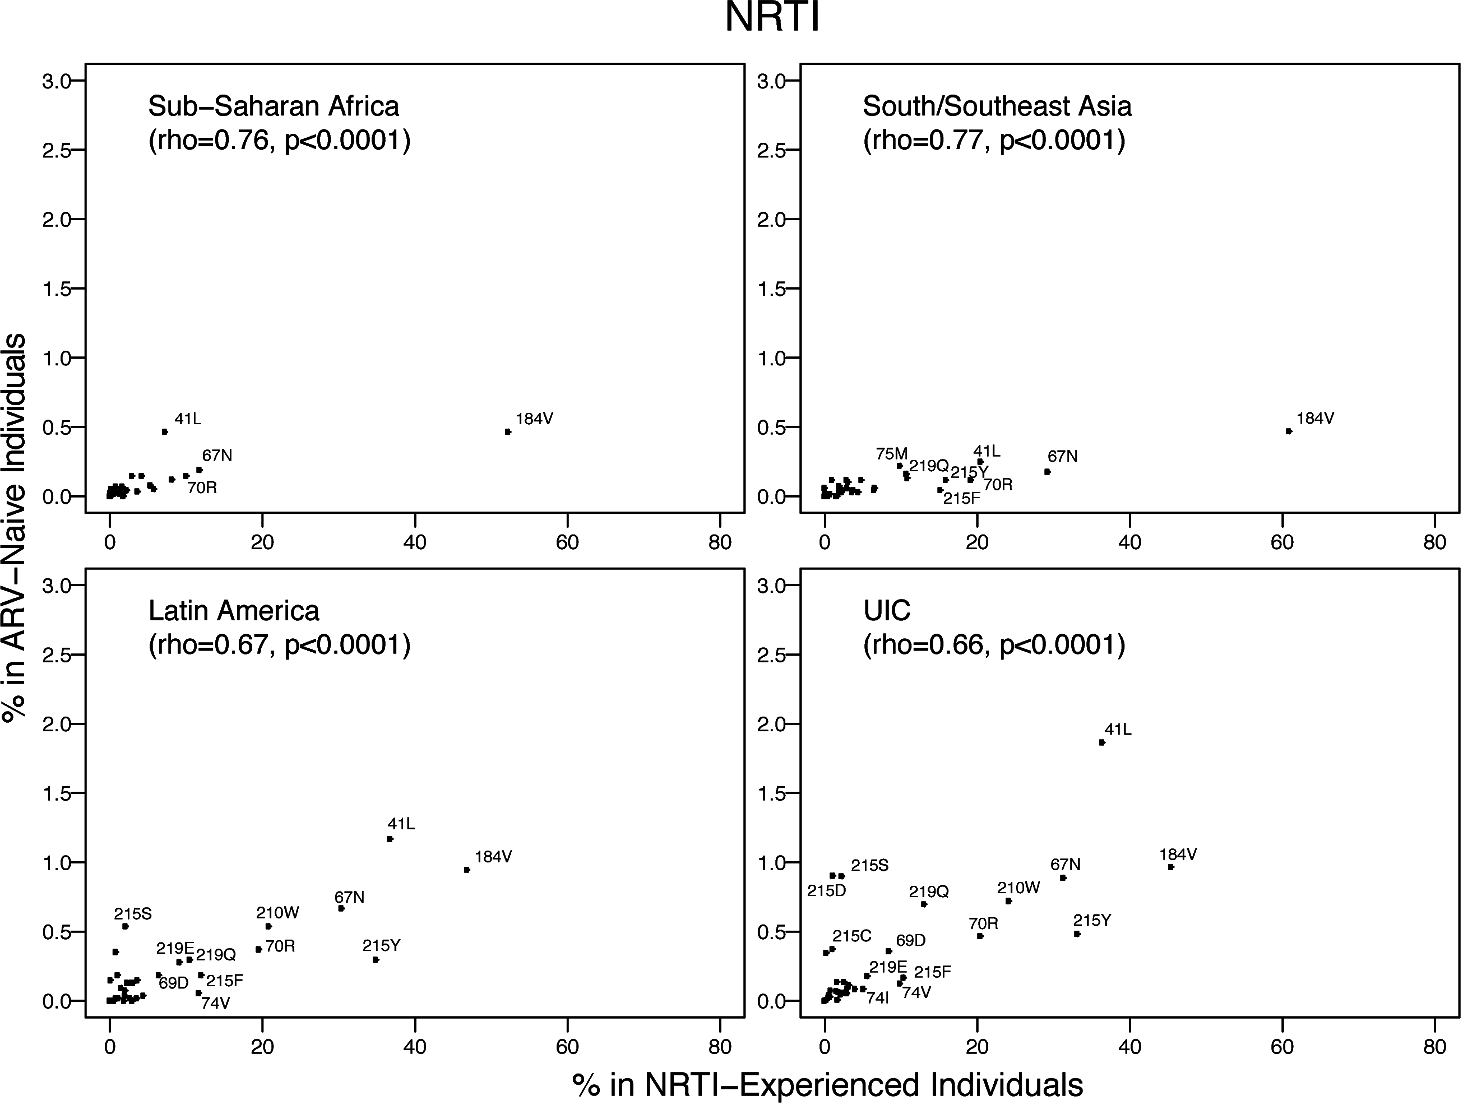 The prevalence of each NRTI-associated surveillance drug-resistance mutation in this meta-analysis versus in NRTI-experienced individuals in the same regions according to HIVDB.